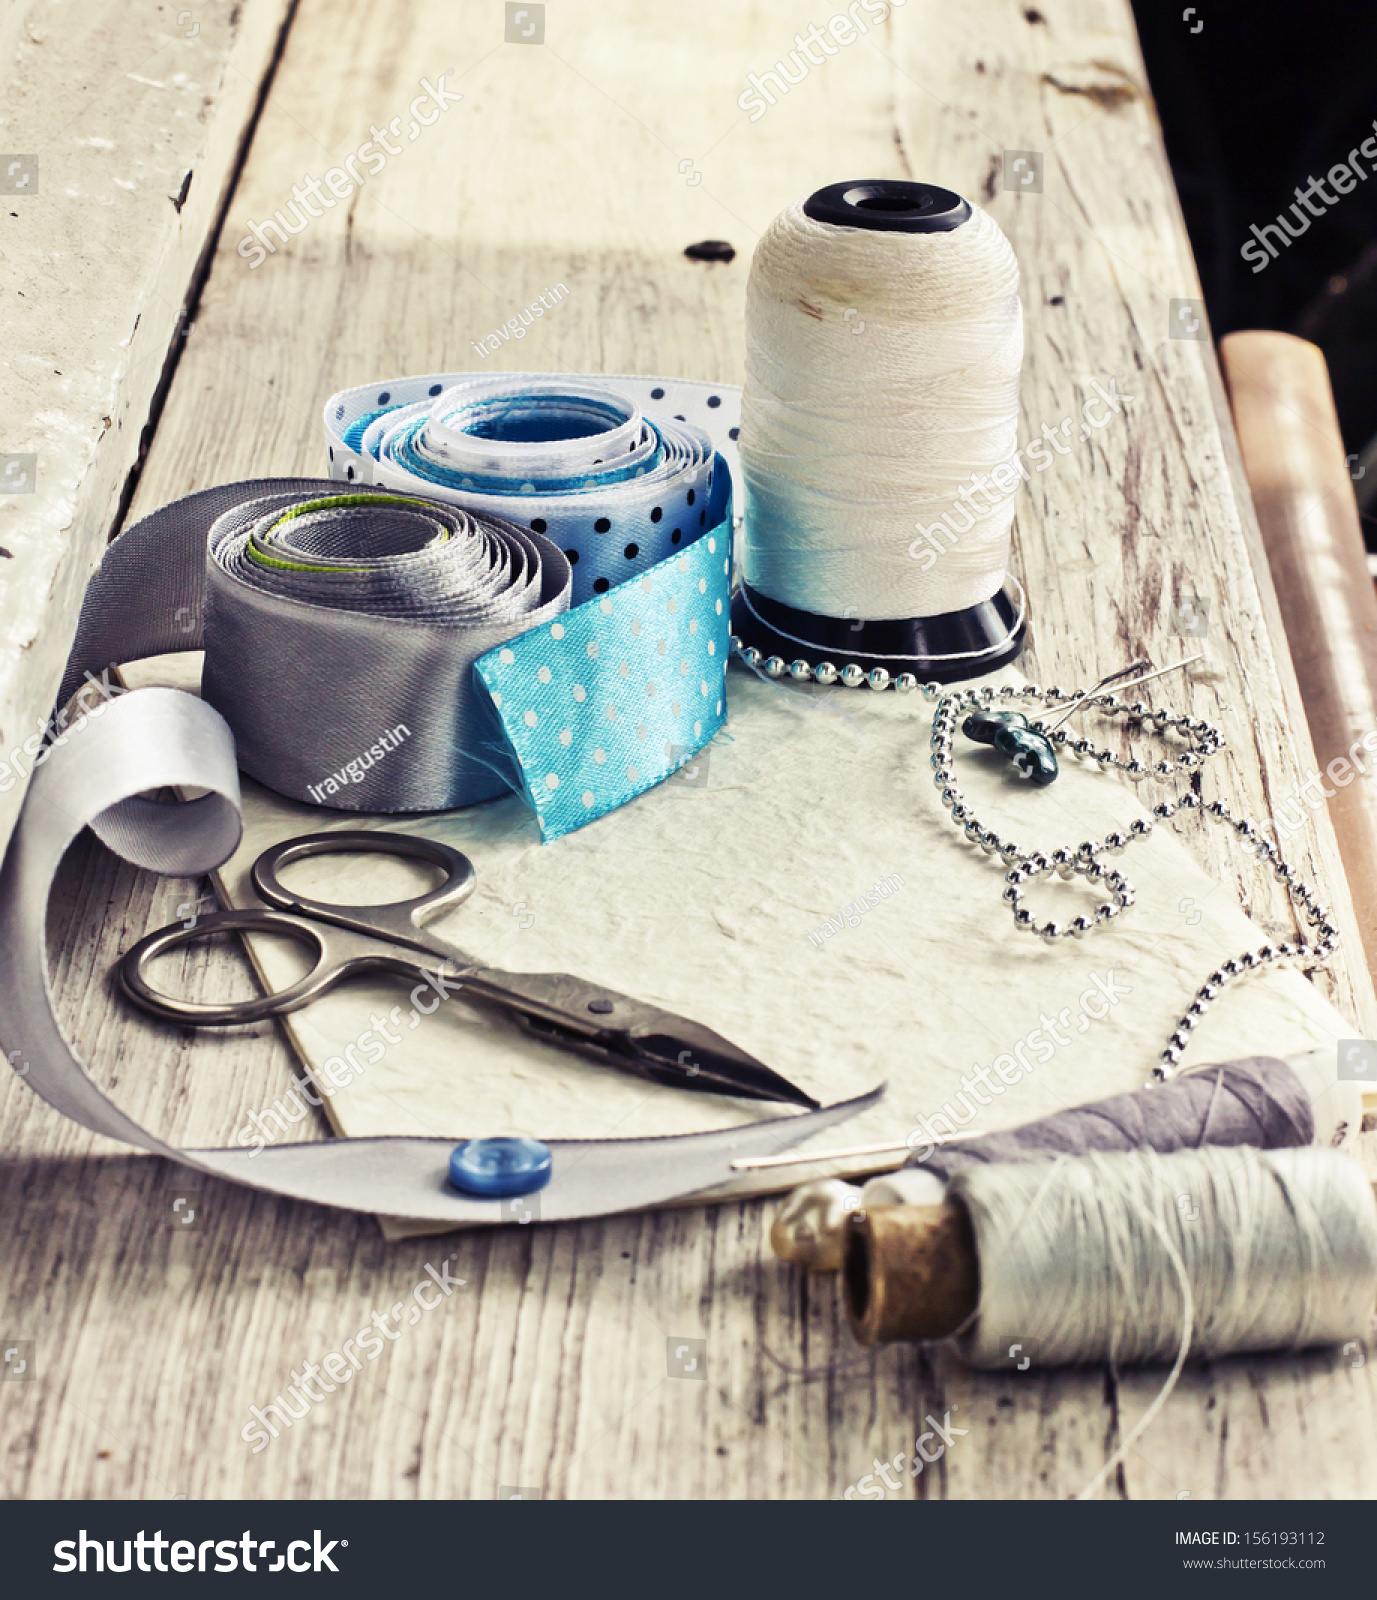 Scrapbooking craft materials background sewing tools stock for Sewing materials